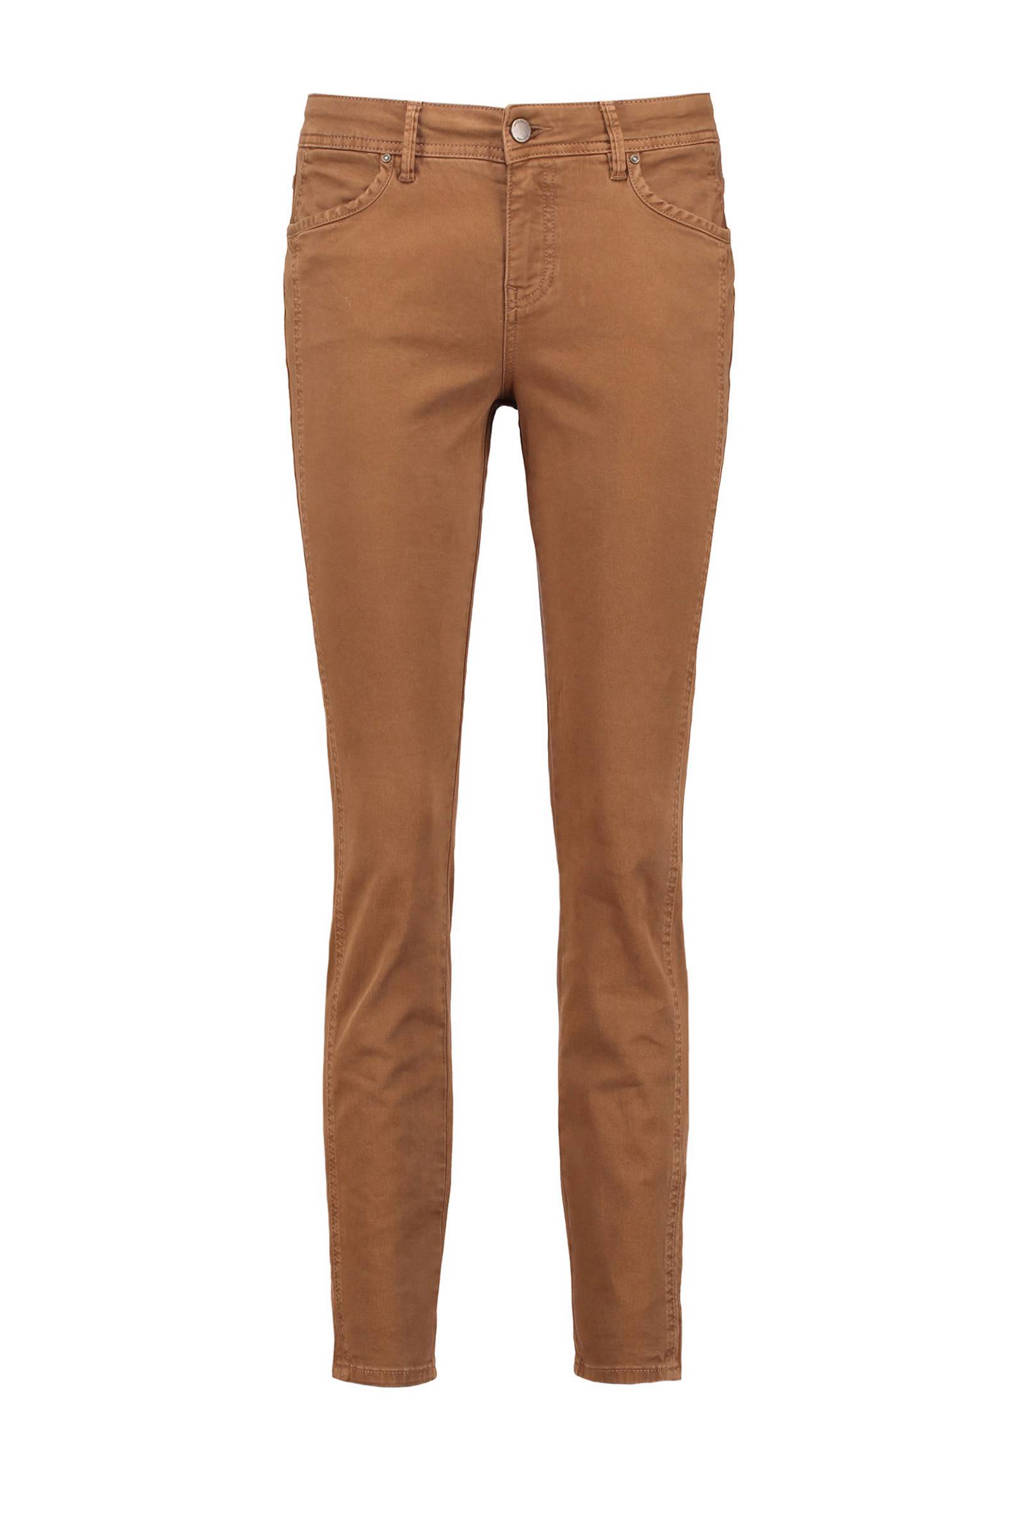 Claudia Sträter slim fit broek, Camel